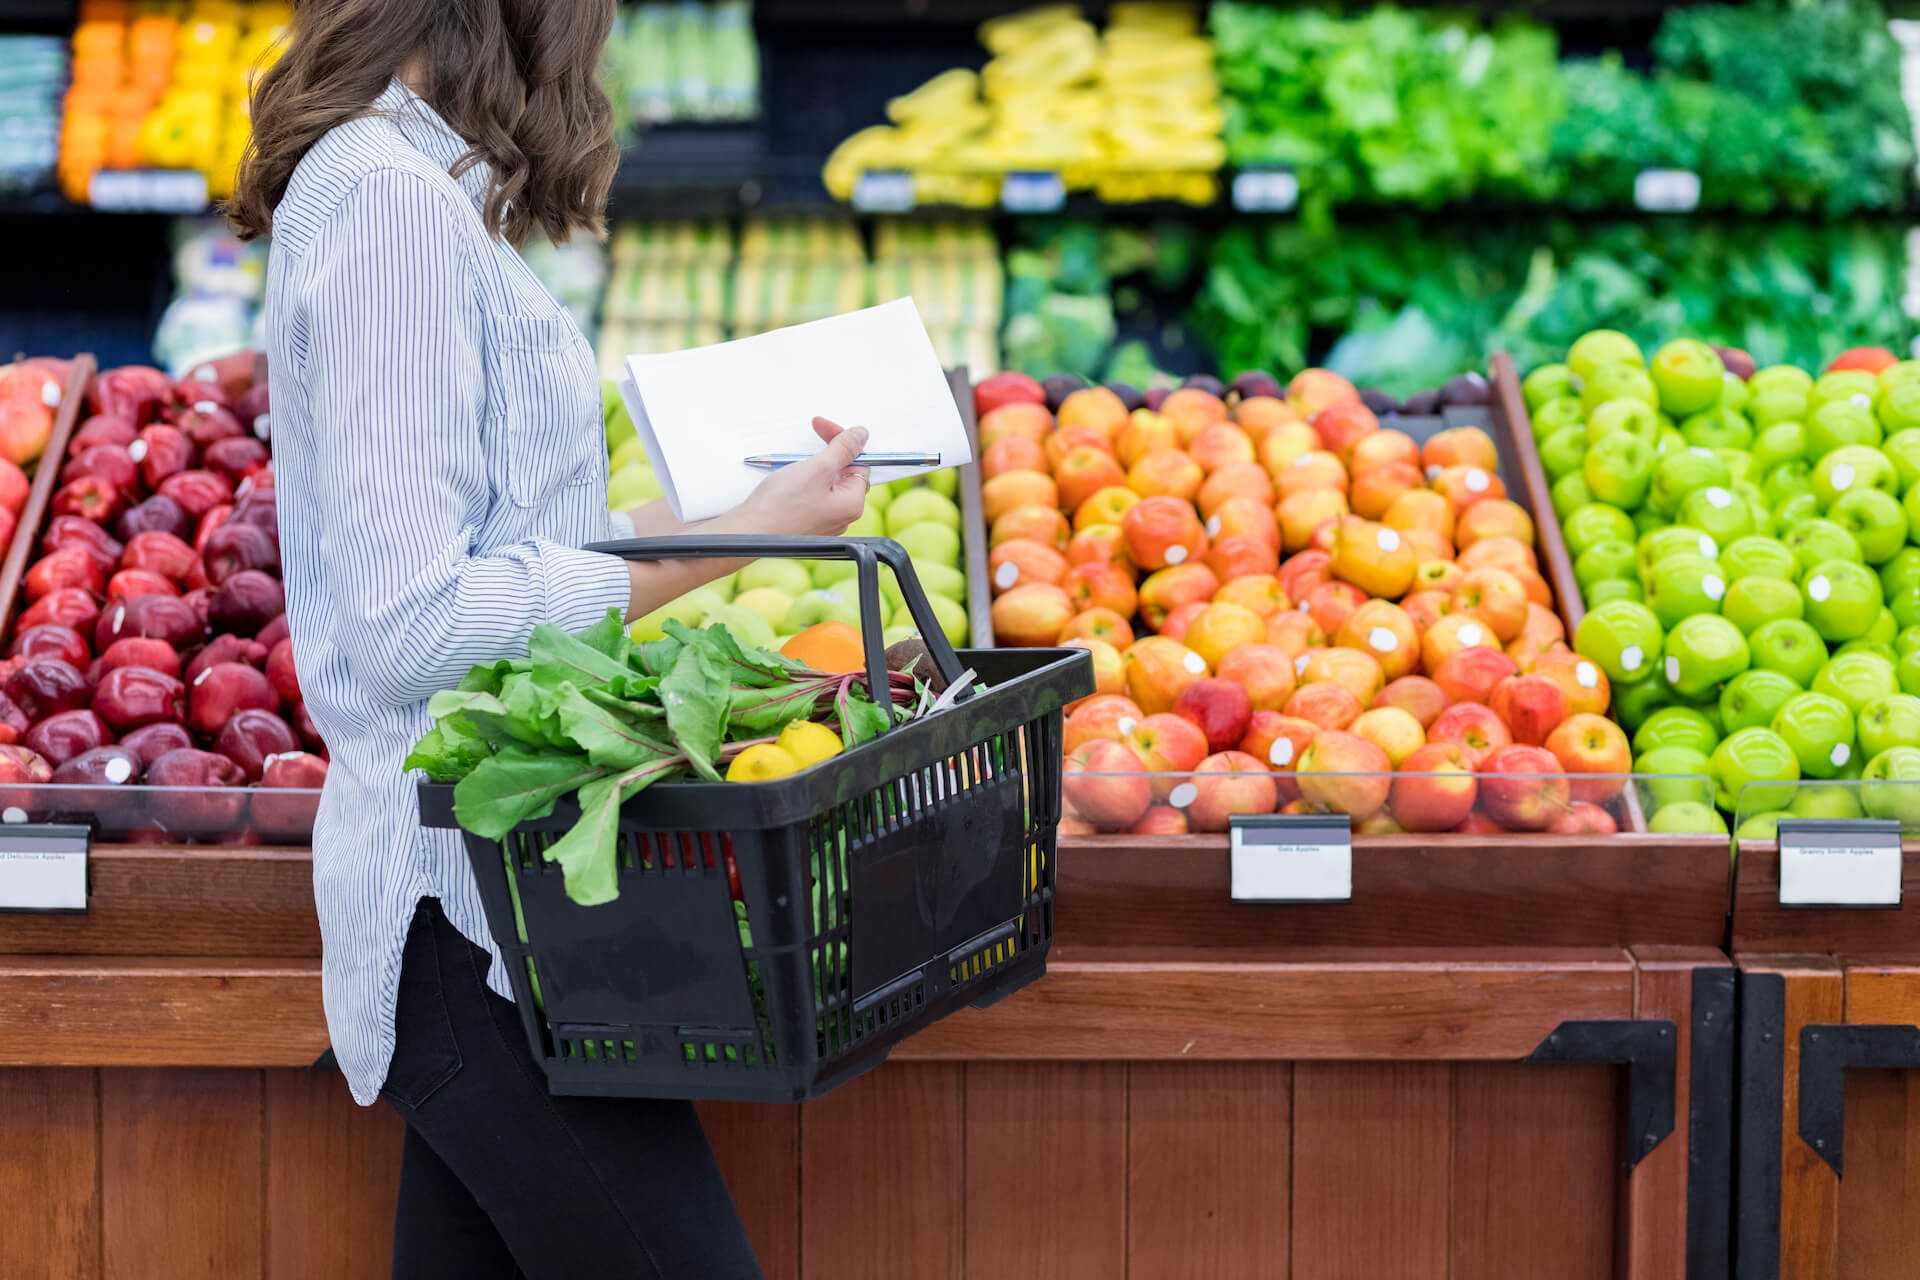 Woman selecting vegetables at the grocery store